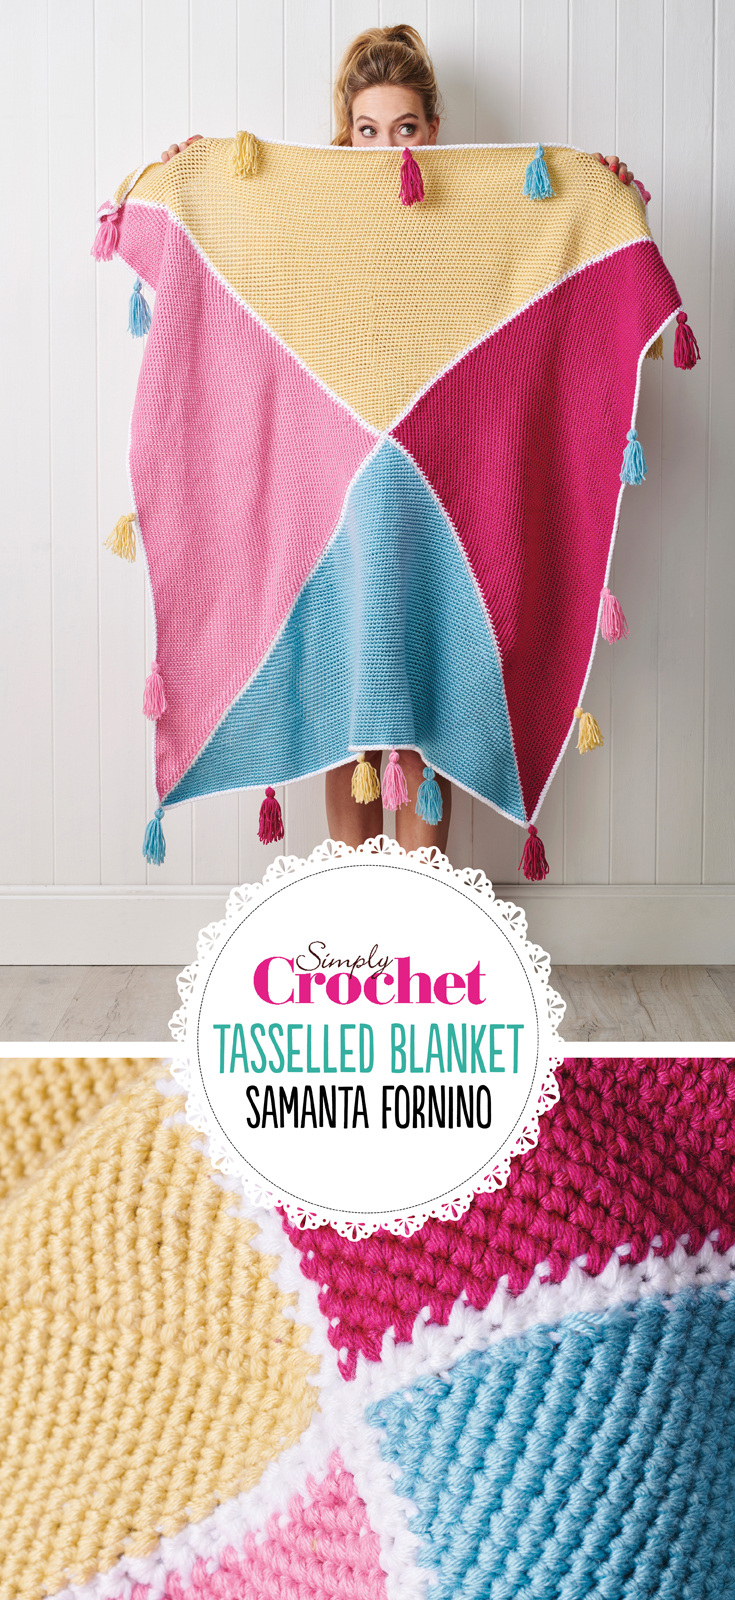 Oh we do love a tassel or two… or in the case of this splendid creation, 20. Yes, bring it on! We can see this blanket is going to be our go-to summer number for lazing in the garden, picnicking with friends, and dancing round the living room pretending we're in Strictly! (Surely everyone does that… don't they?!)